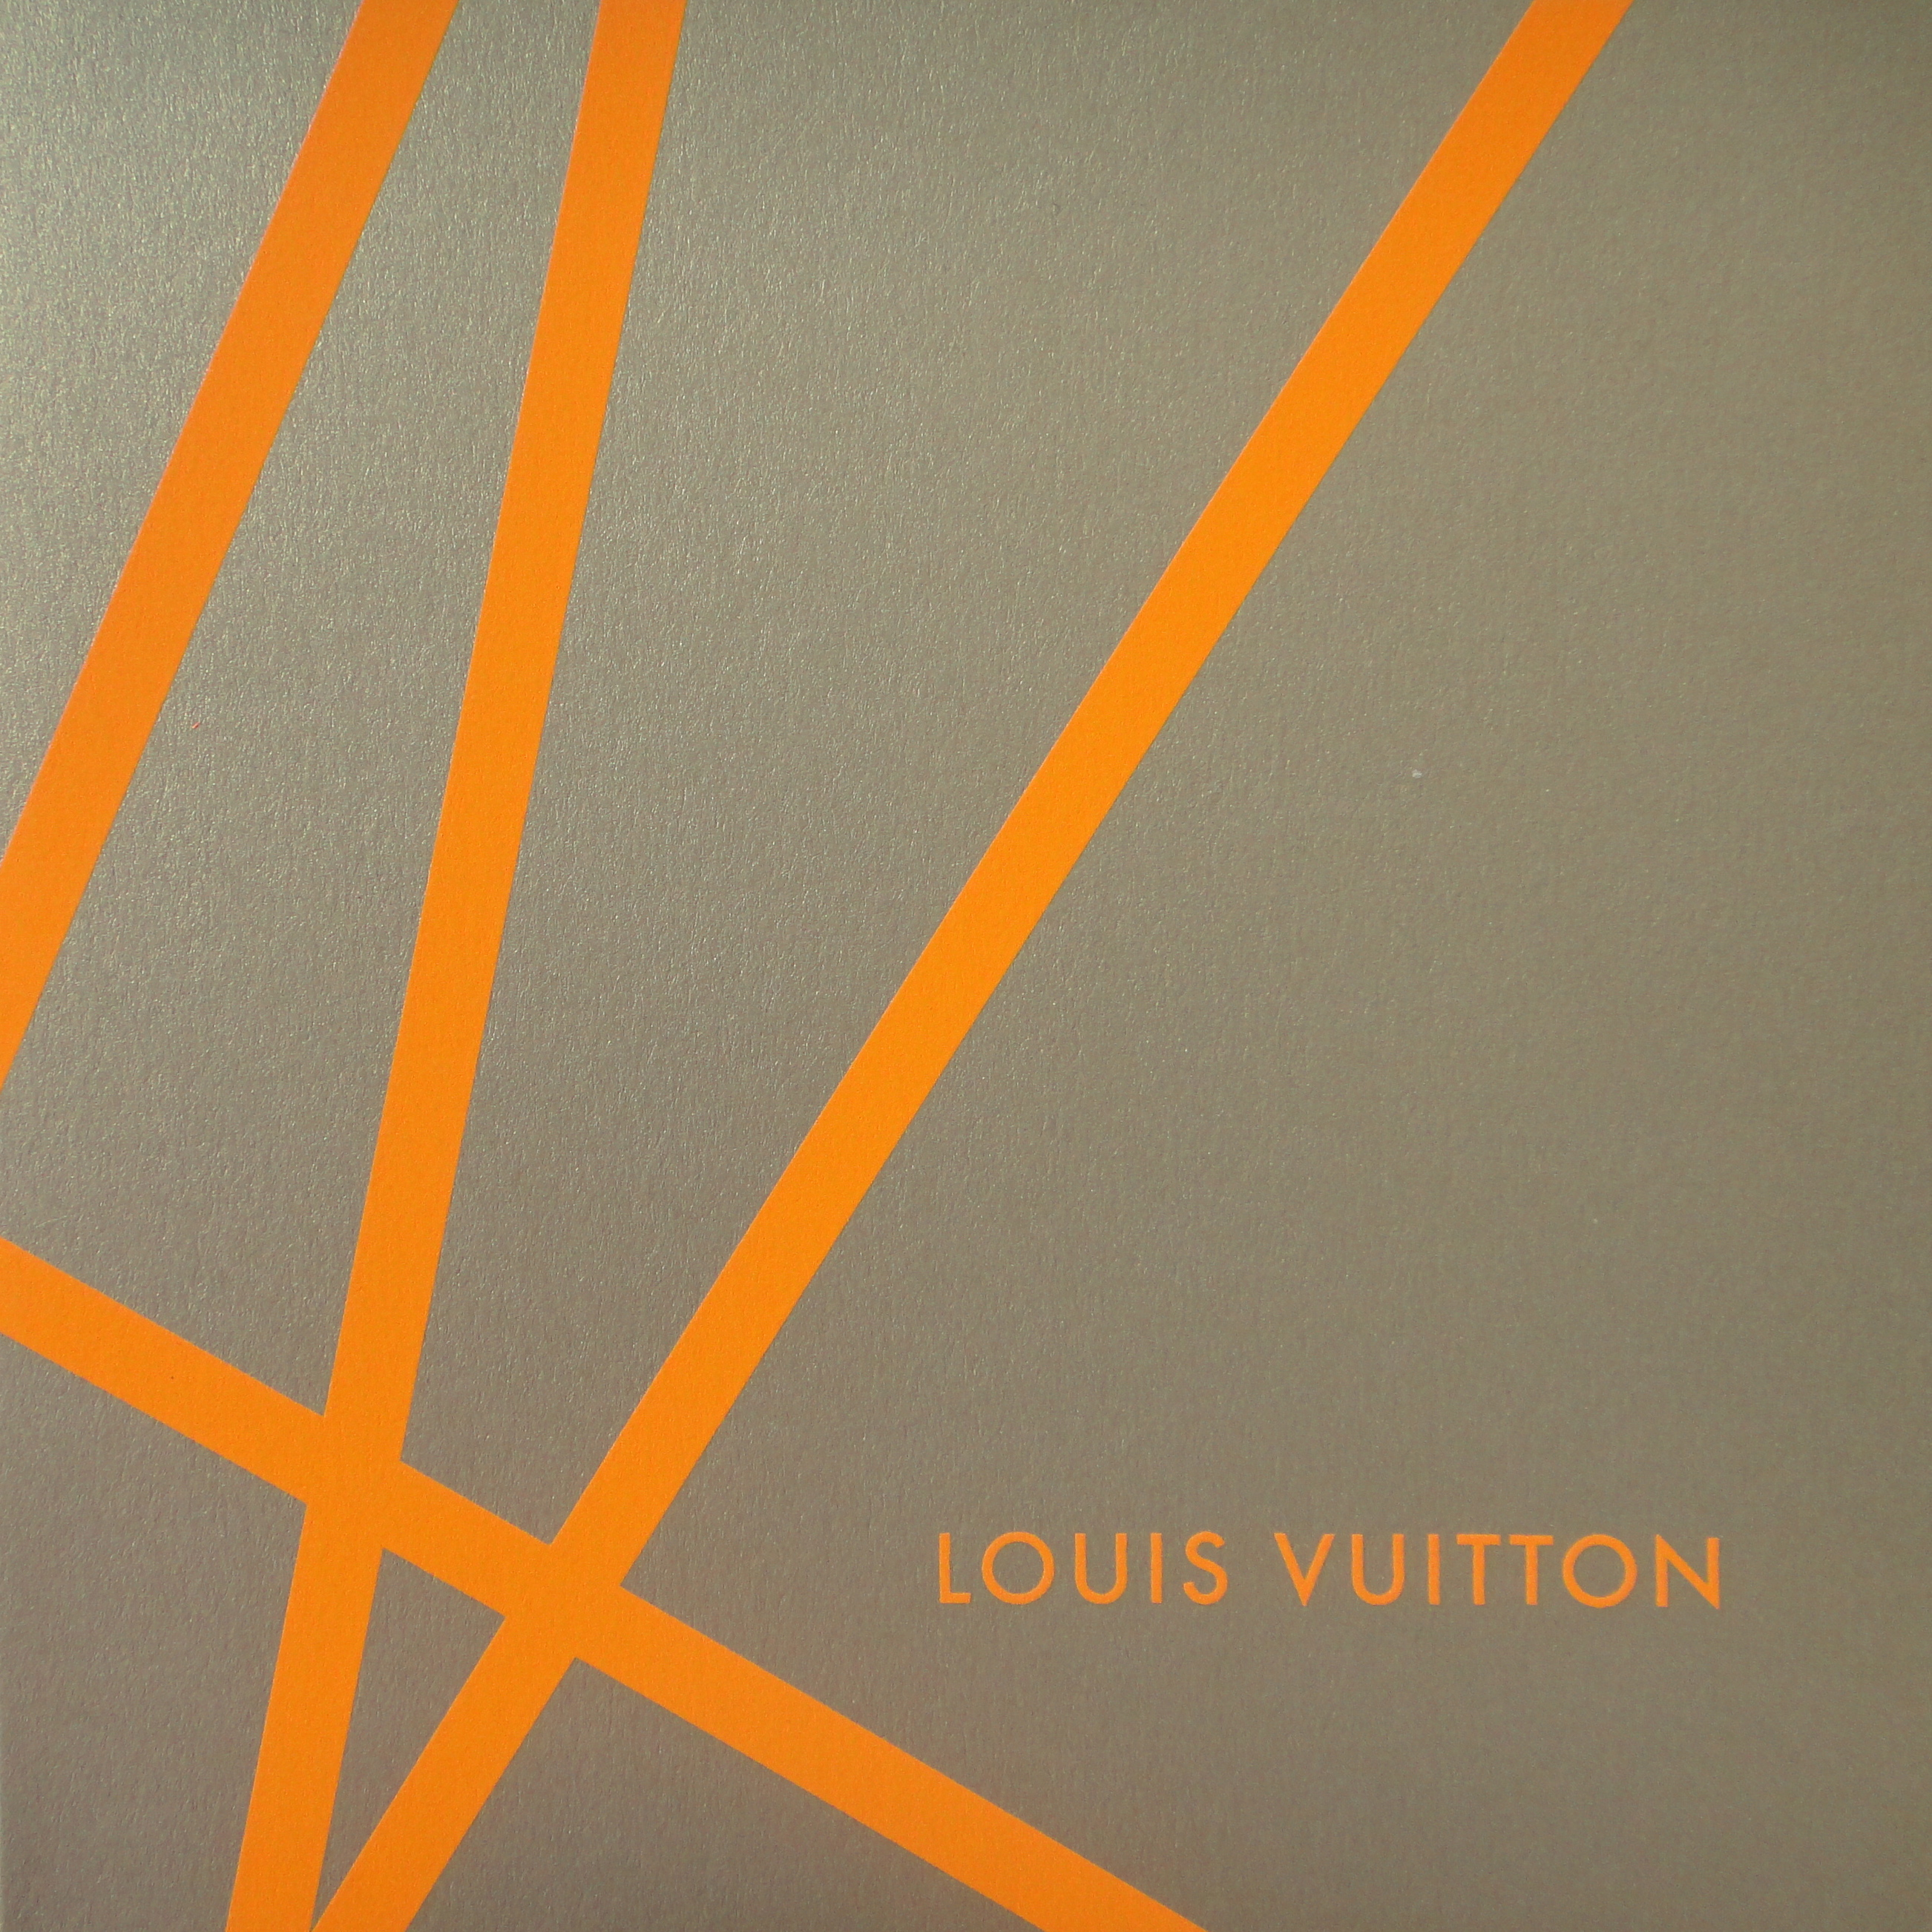 Christmas card 2002 - Louis Vuitton - Weihnachtskarte 2002